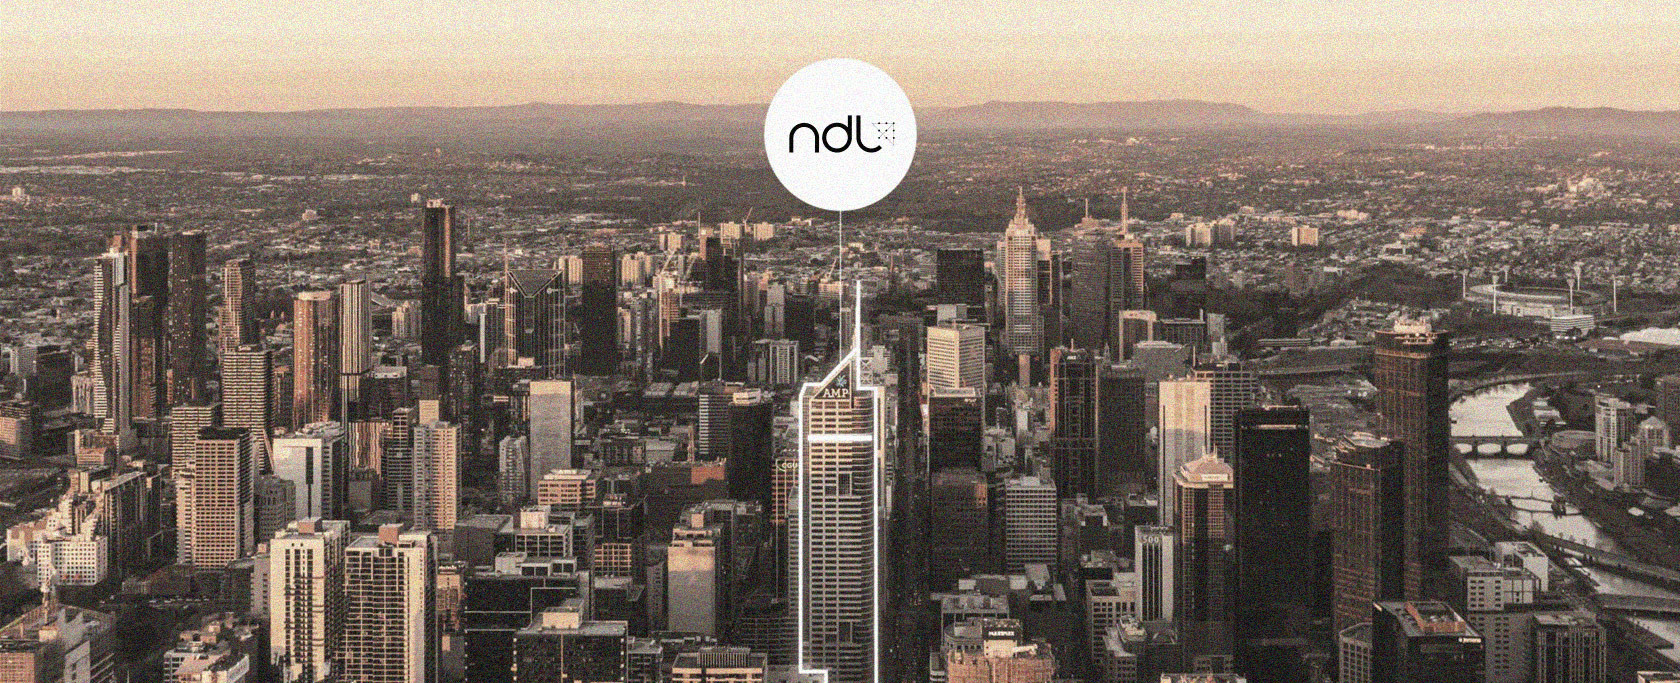 Nine Dots Legal (NDL) is a boutique expert law firm based in Melbourne's CBD specialising in property, commercial, corporate and tax law